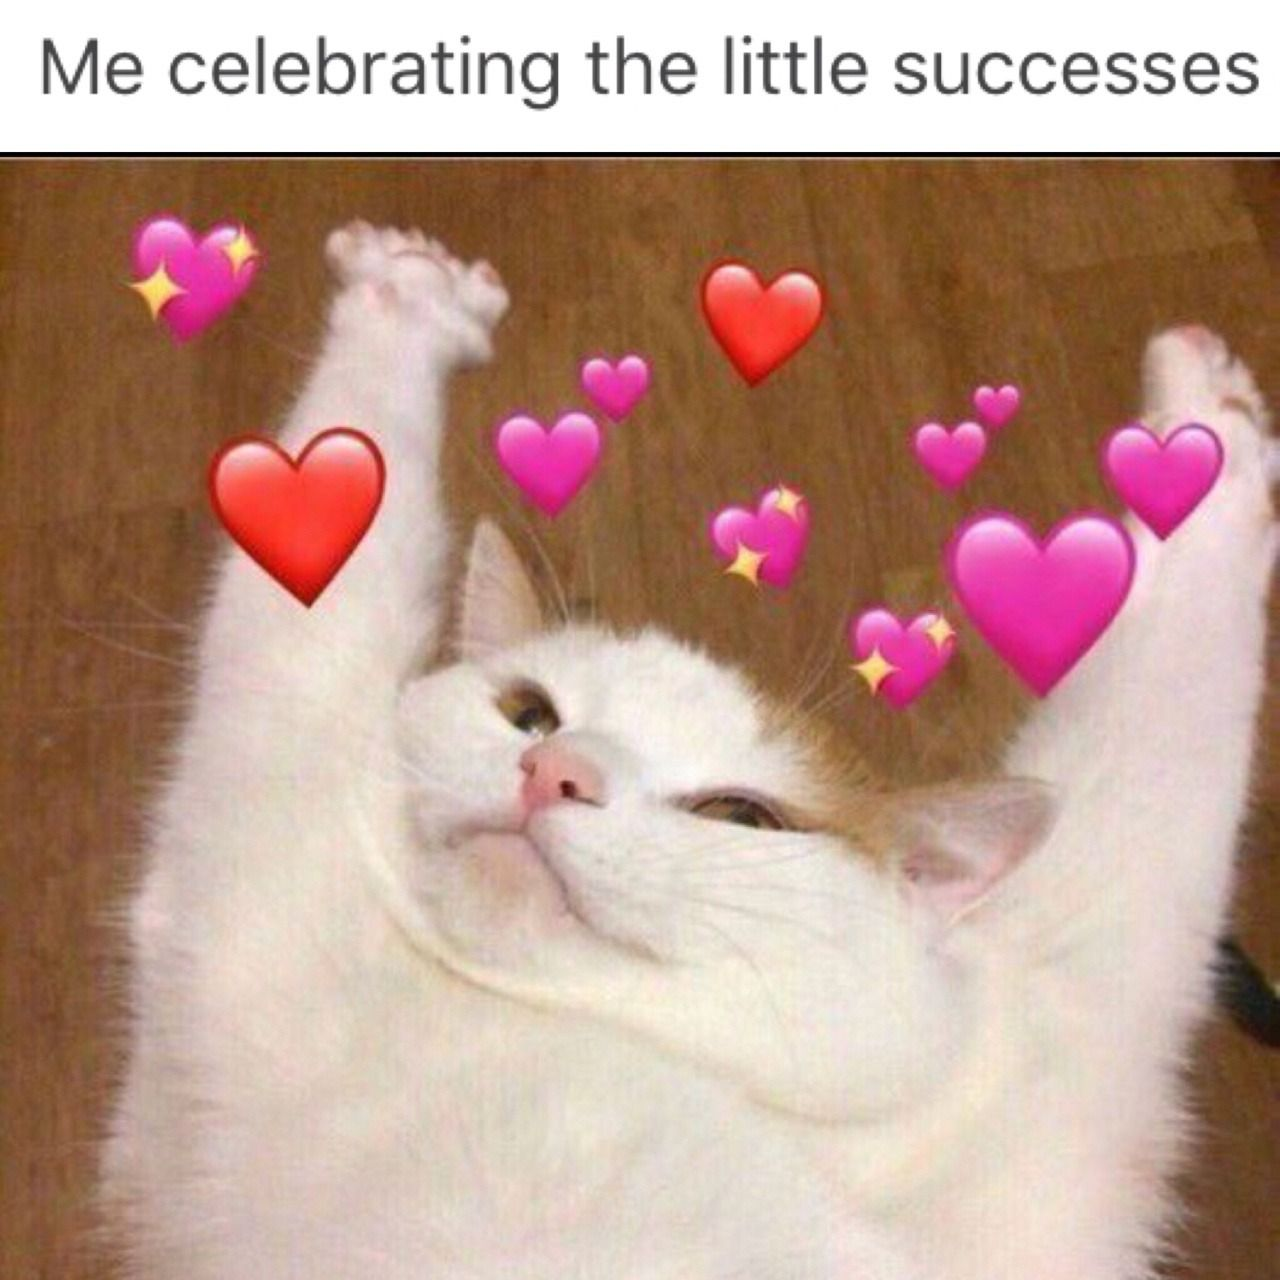 Wholesome Memes With Images Cute Love Memes Cat Memes Cute Memes